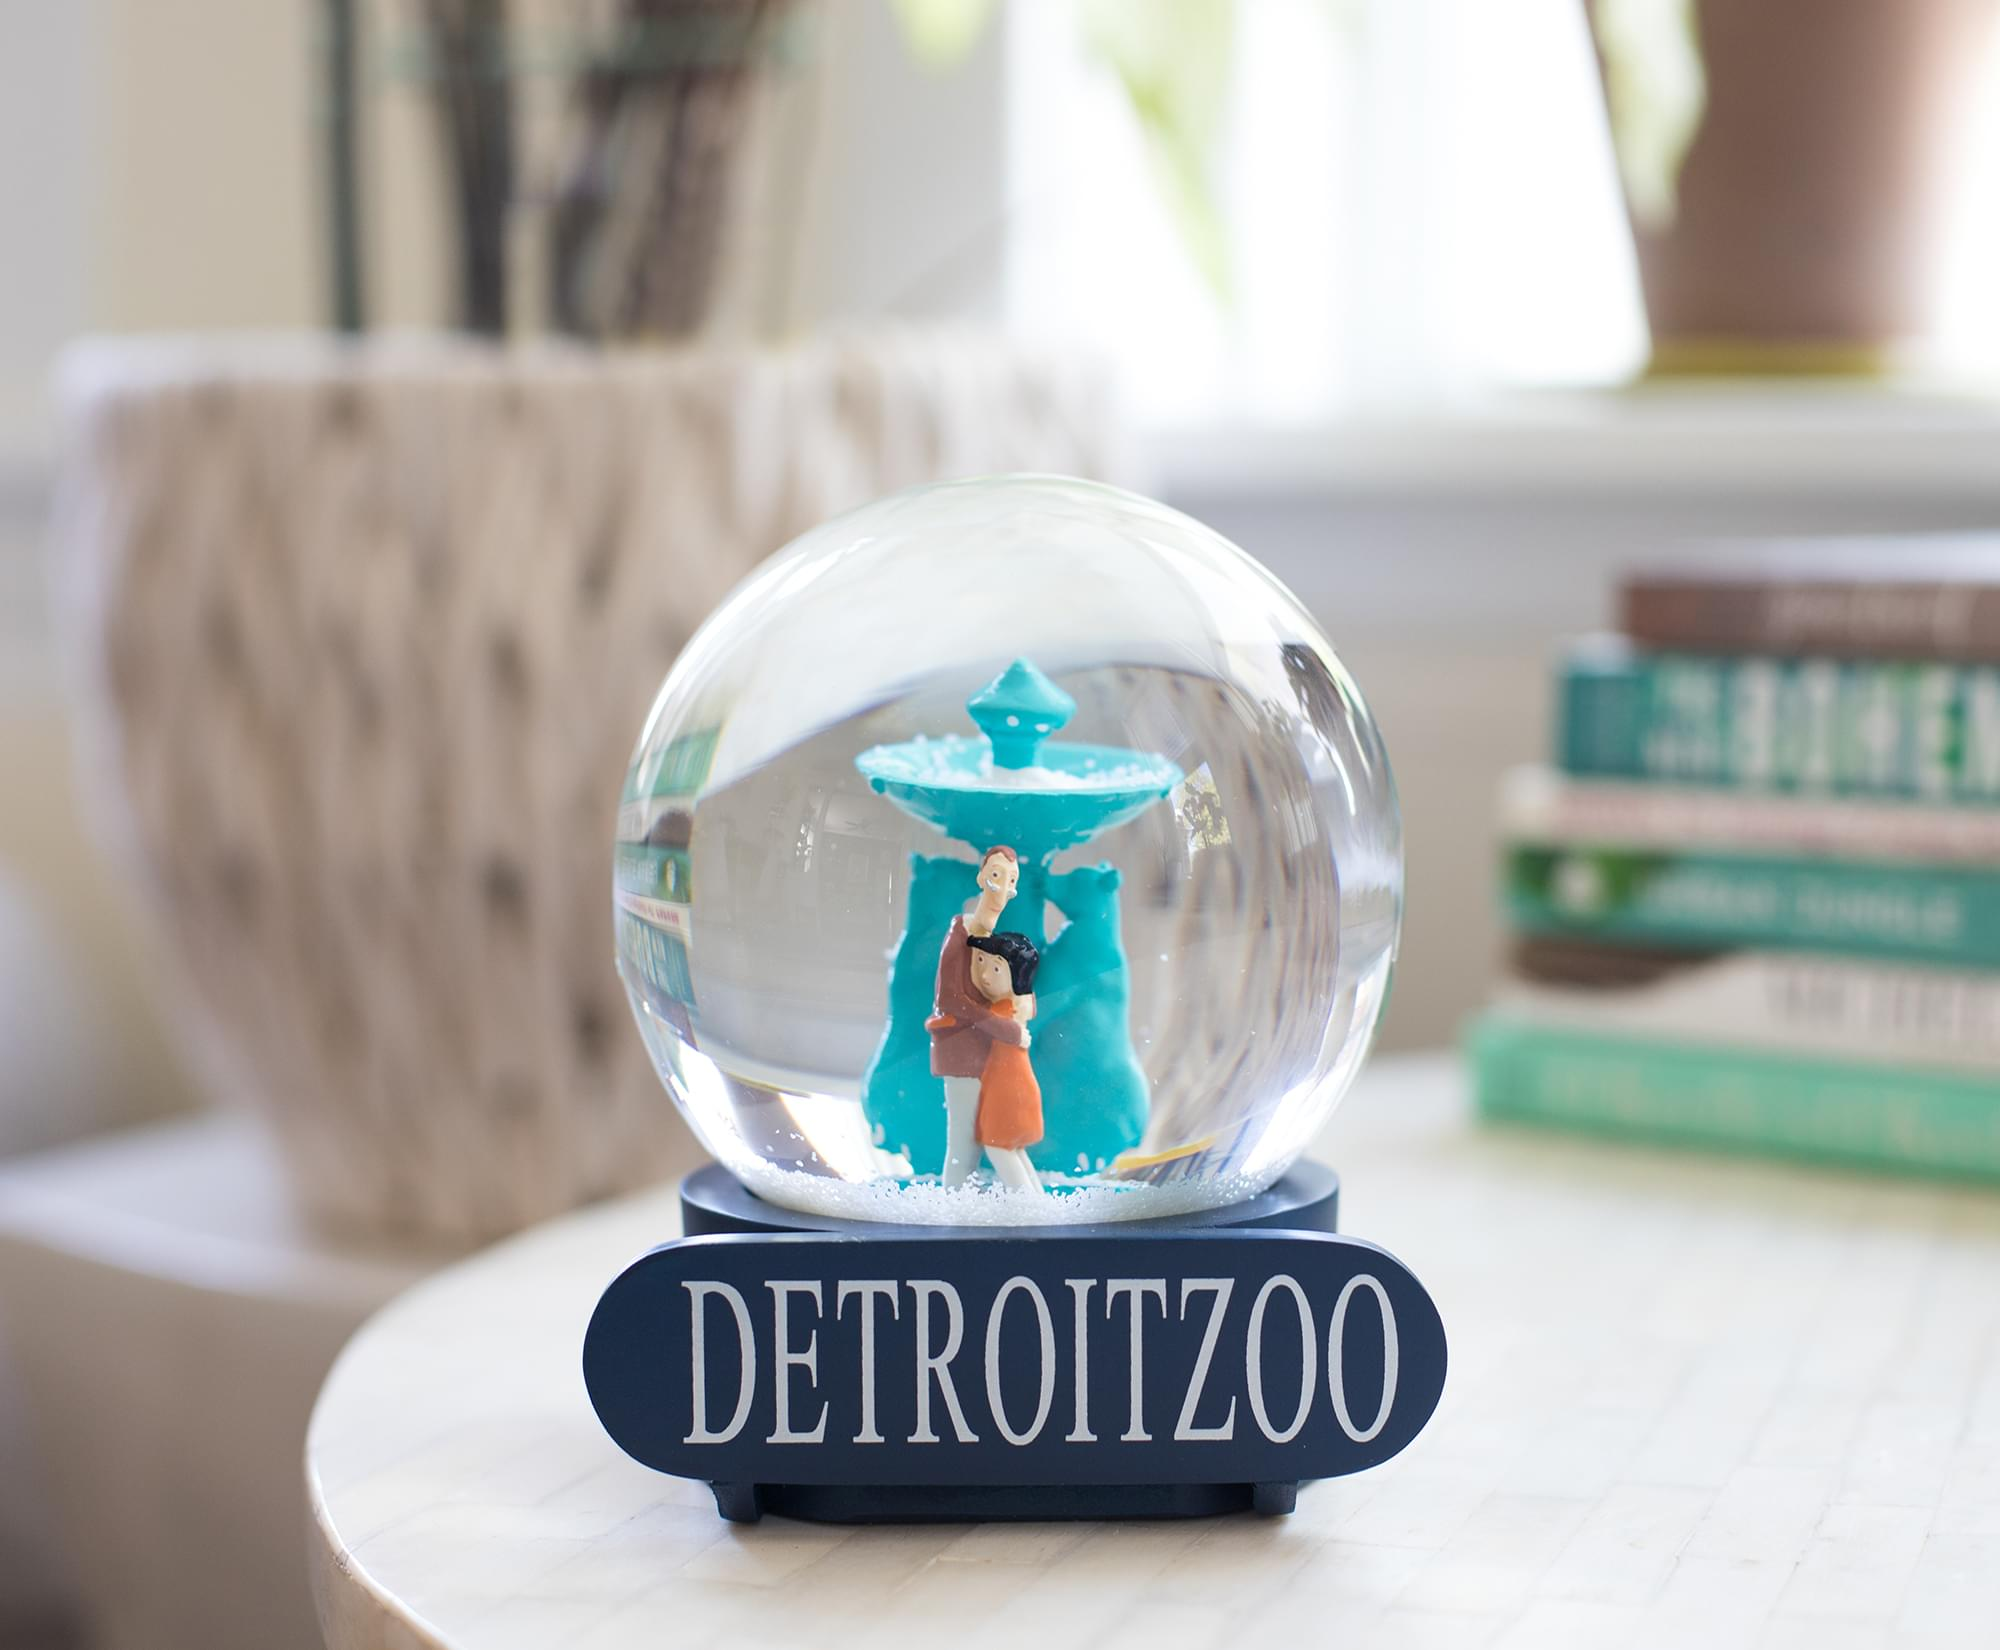 Coraline Snow Globe Detroit Zoo Collectible Display Piece 6 Inches T Toynk Toys